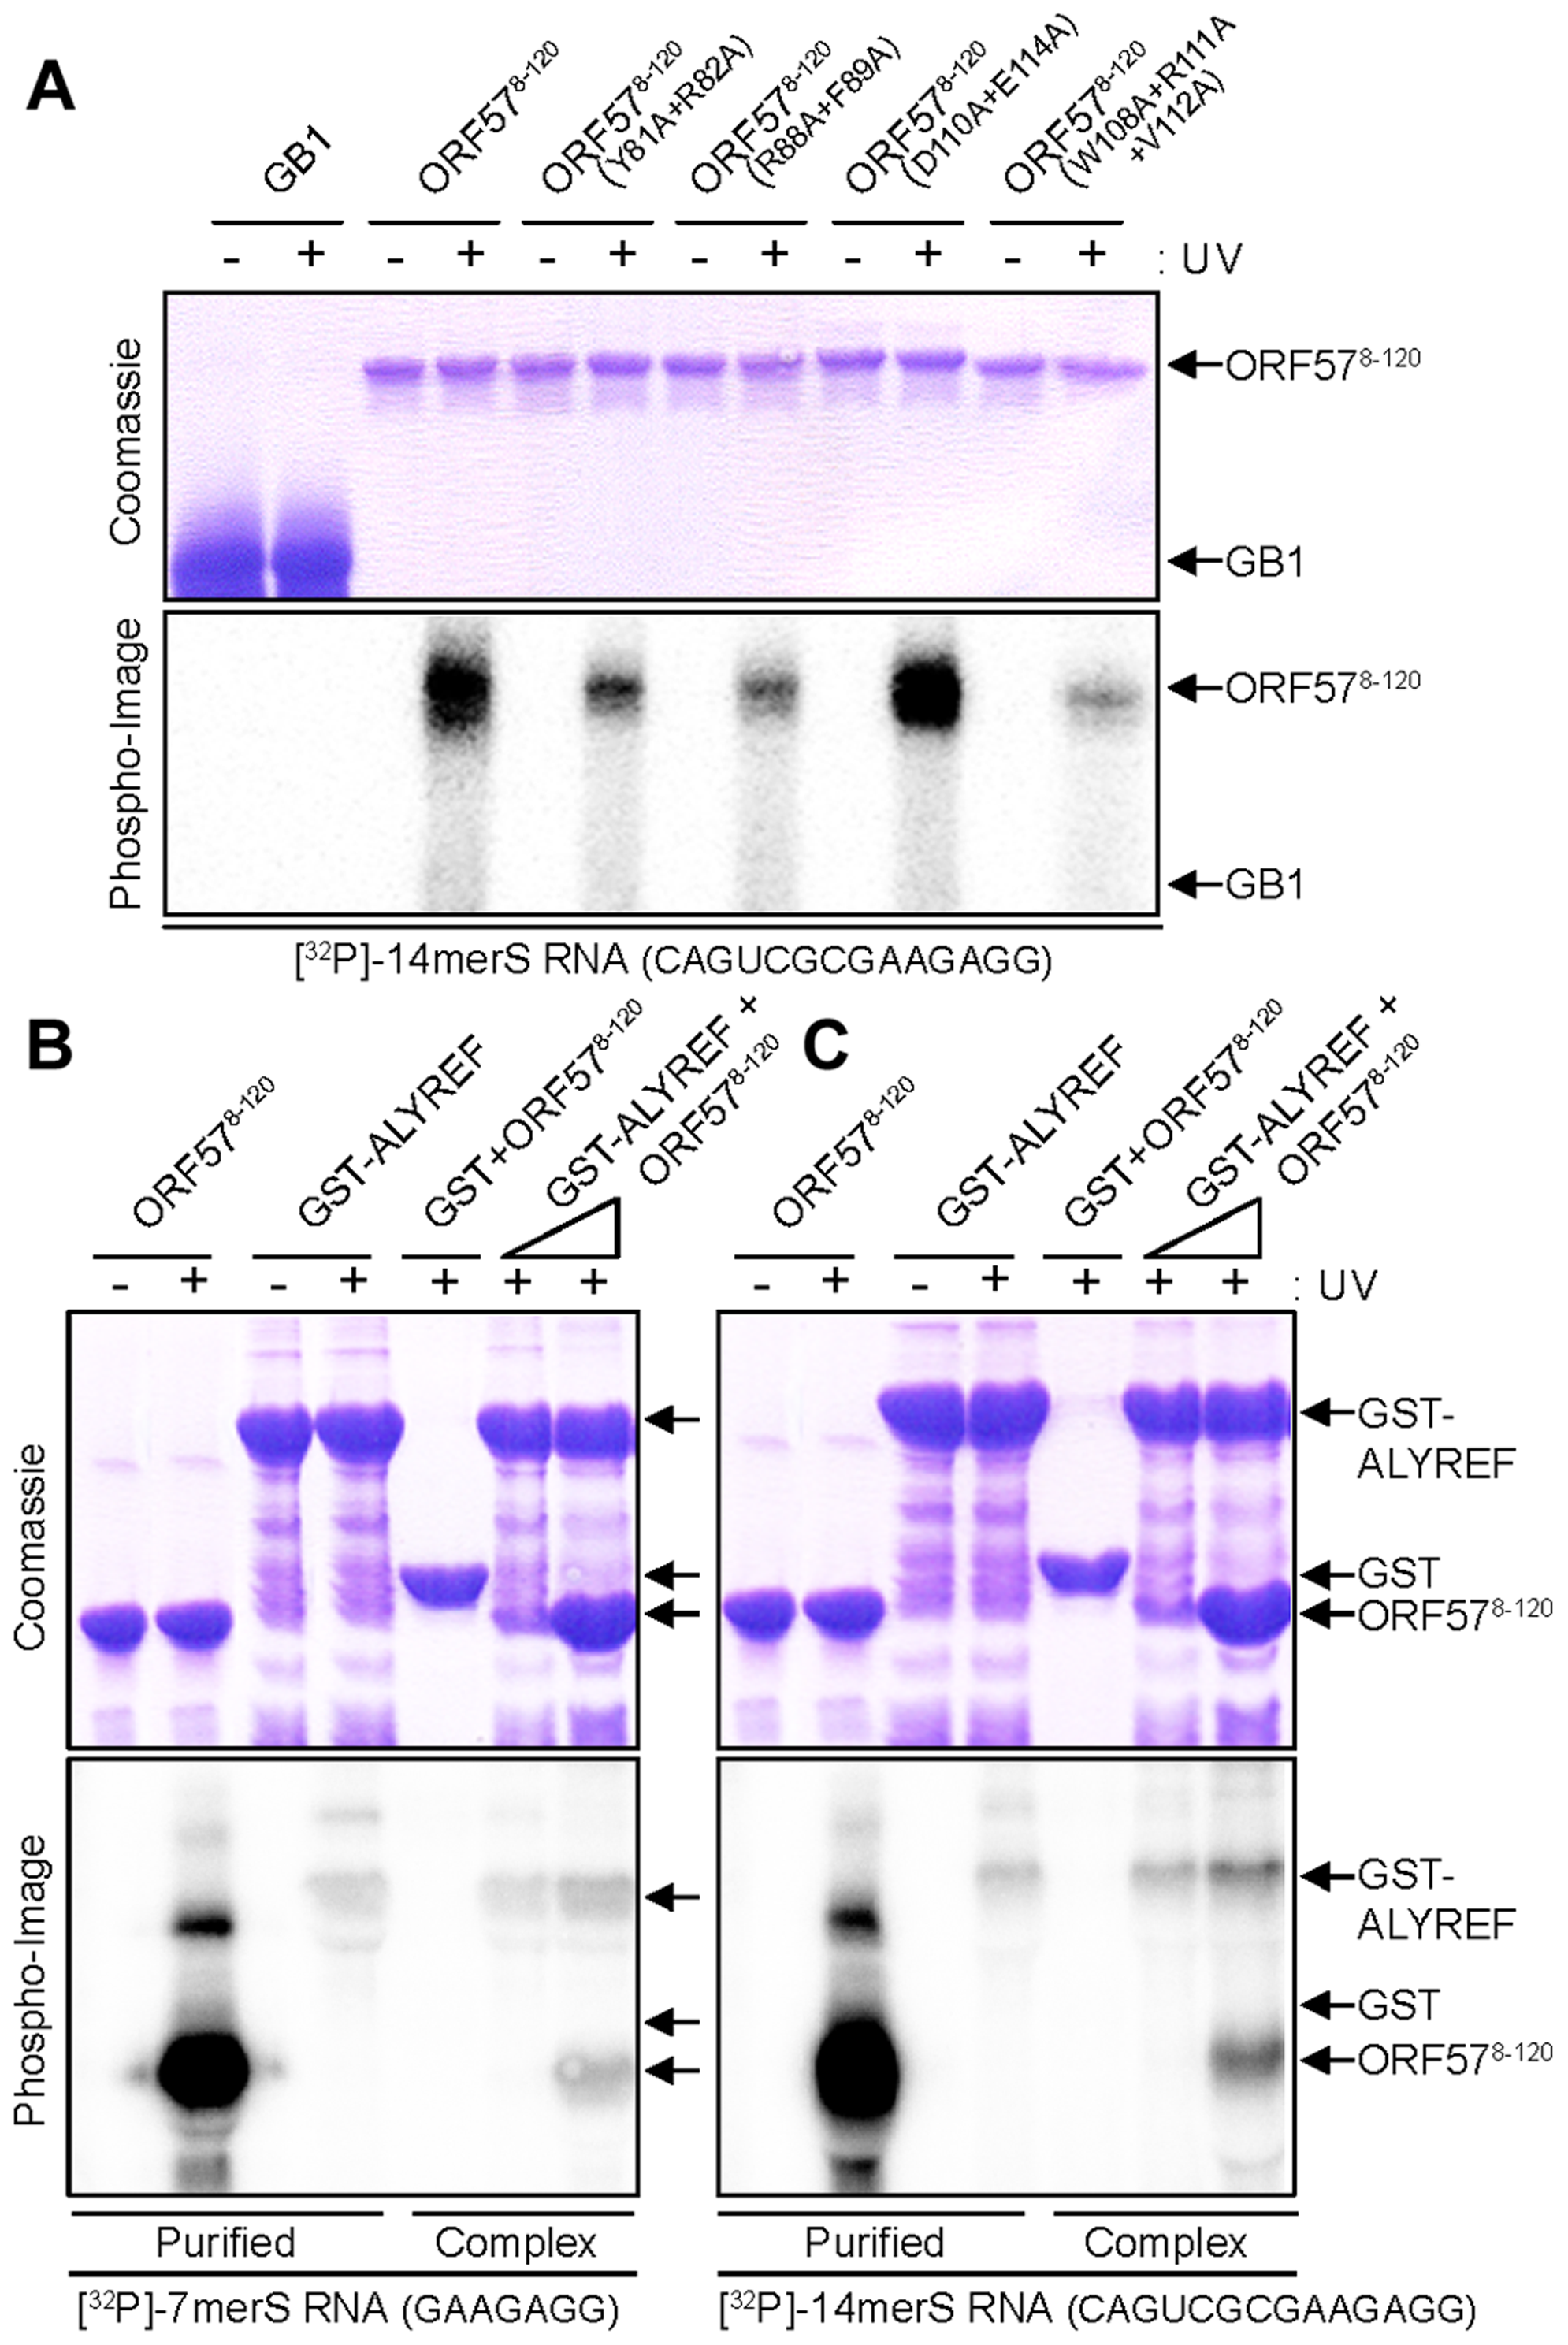 Probing ORF57-RNA binding by mutations and UV cross-linking, and ALYREF-ORF57-RNA remodeling assay.